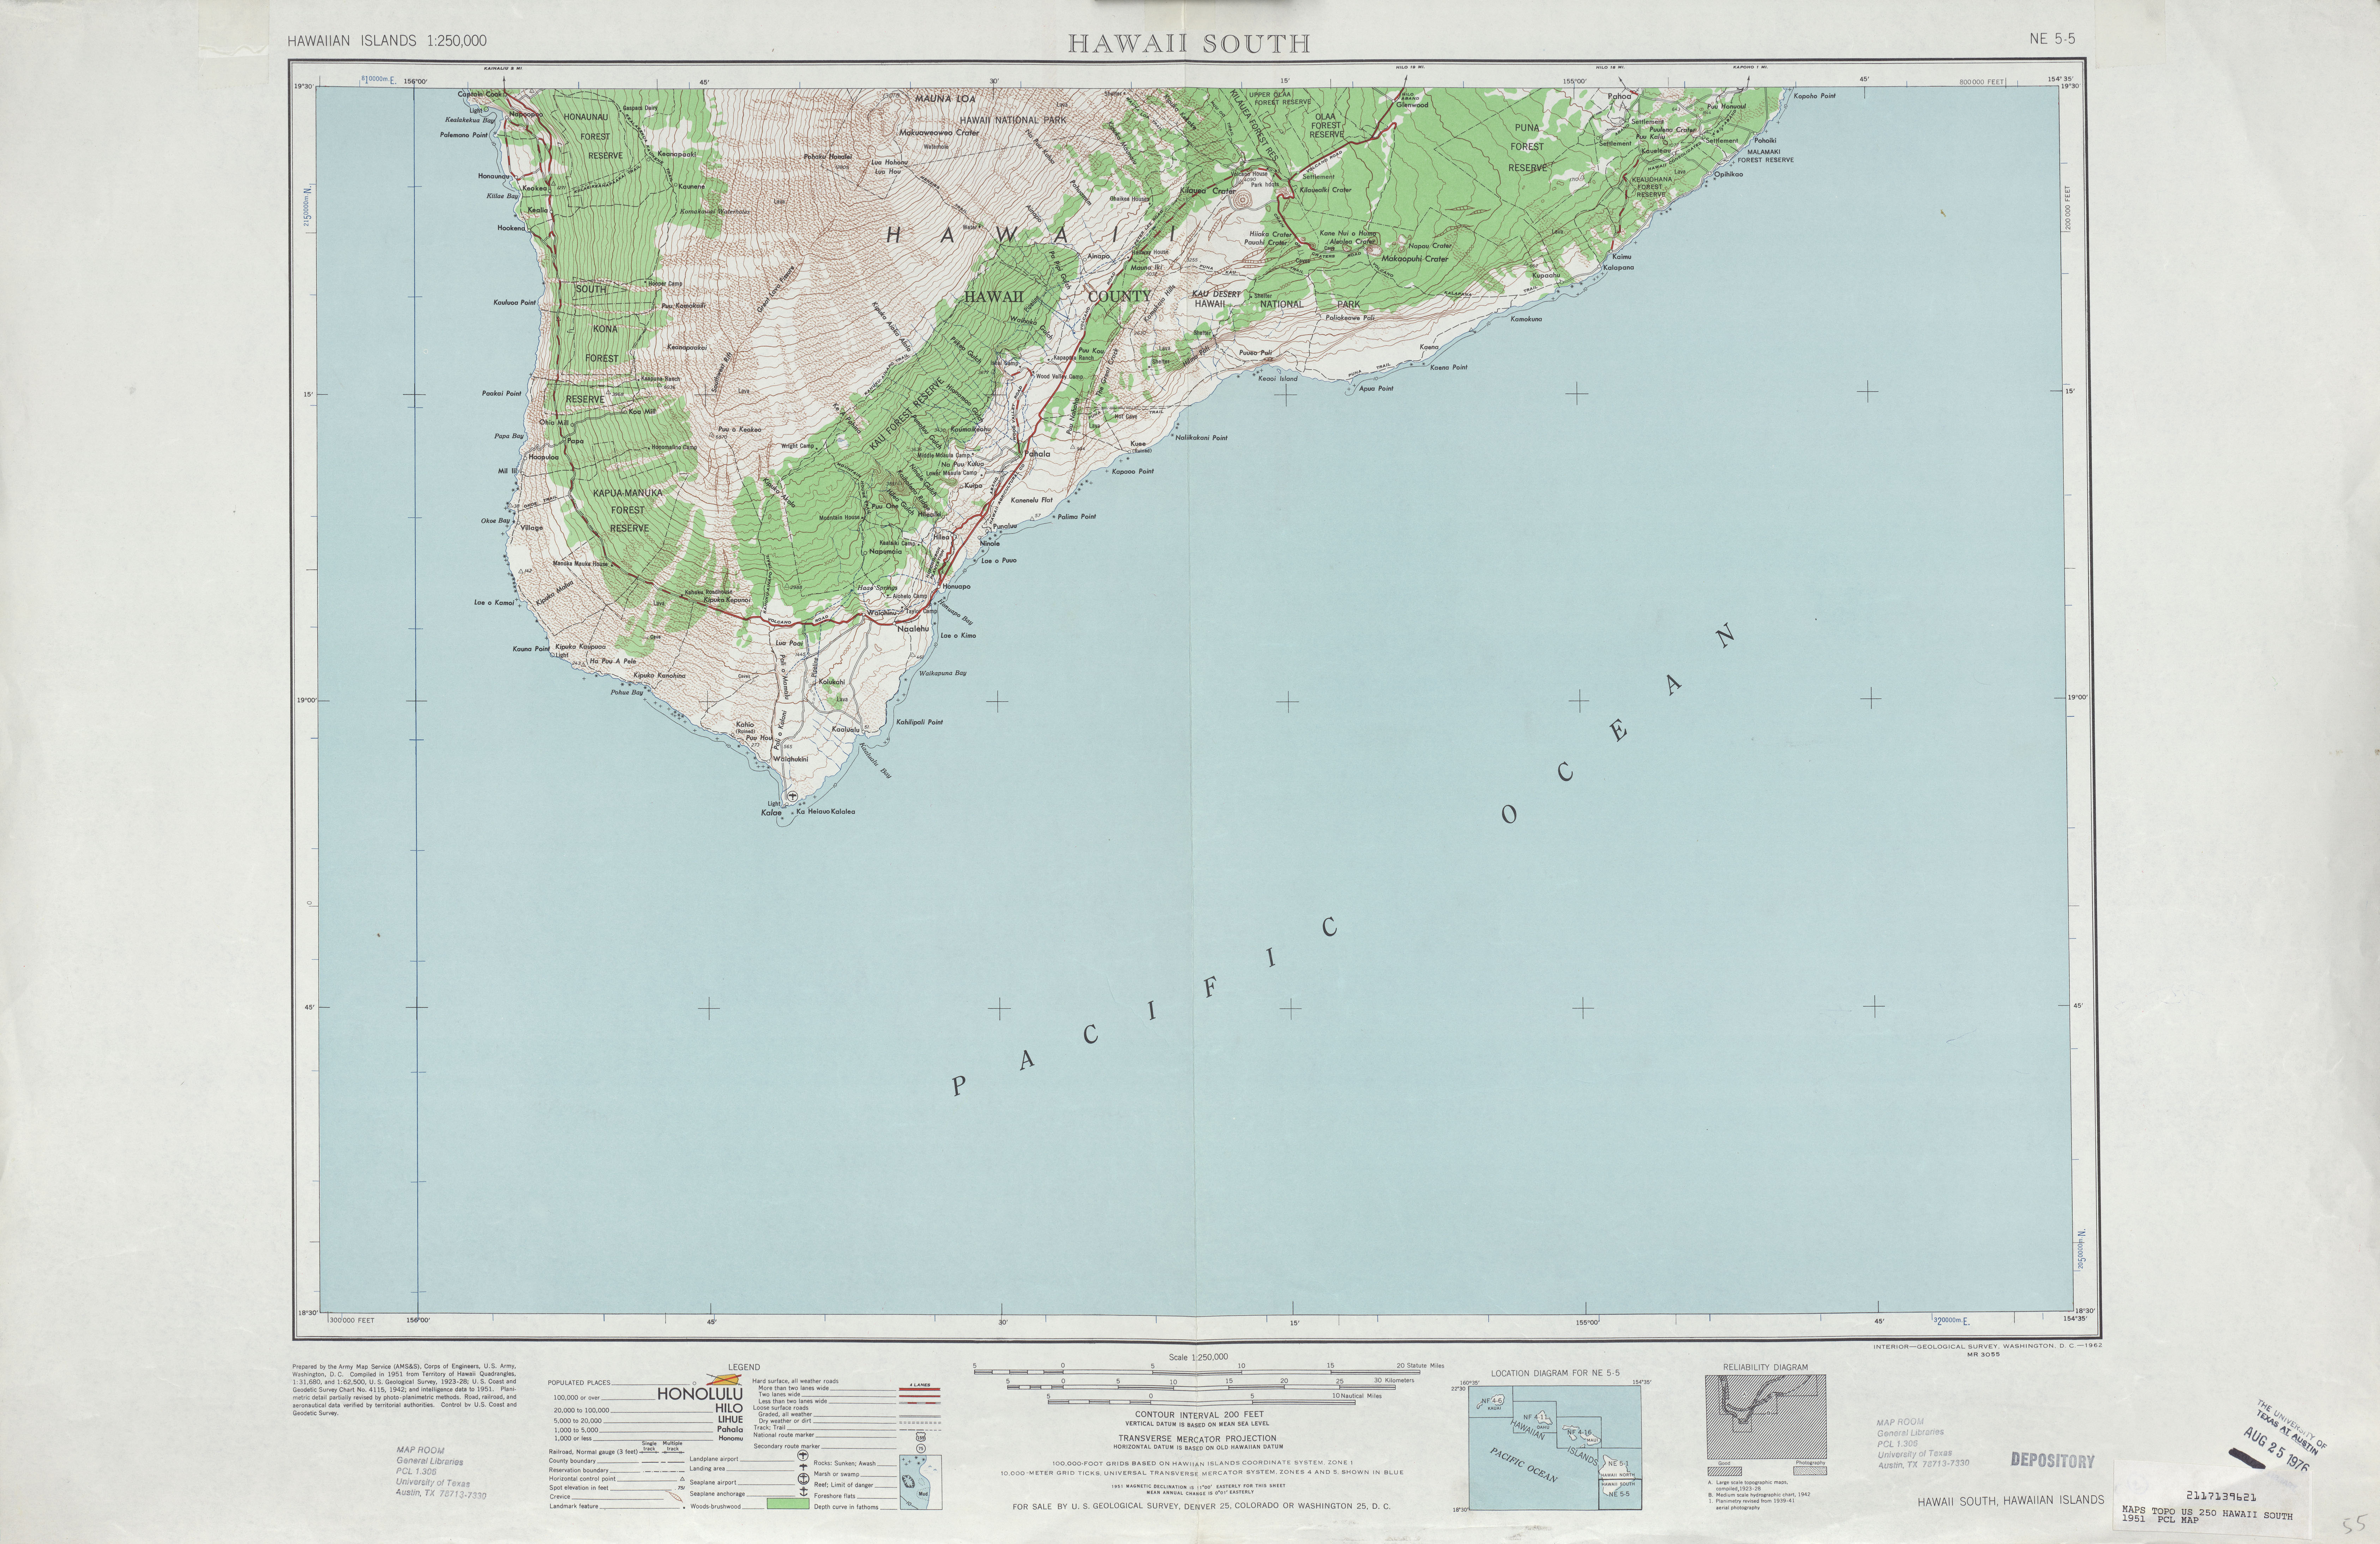 Hawaii Topographic Maps - Perry-Castañeda Map Collection - UT ...